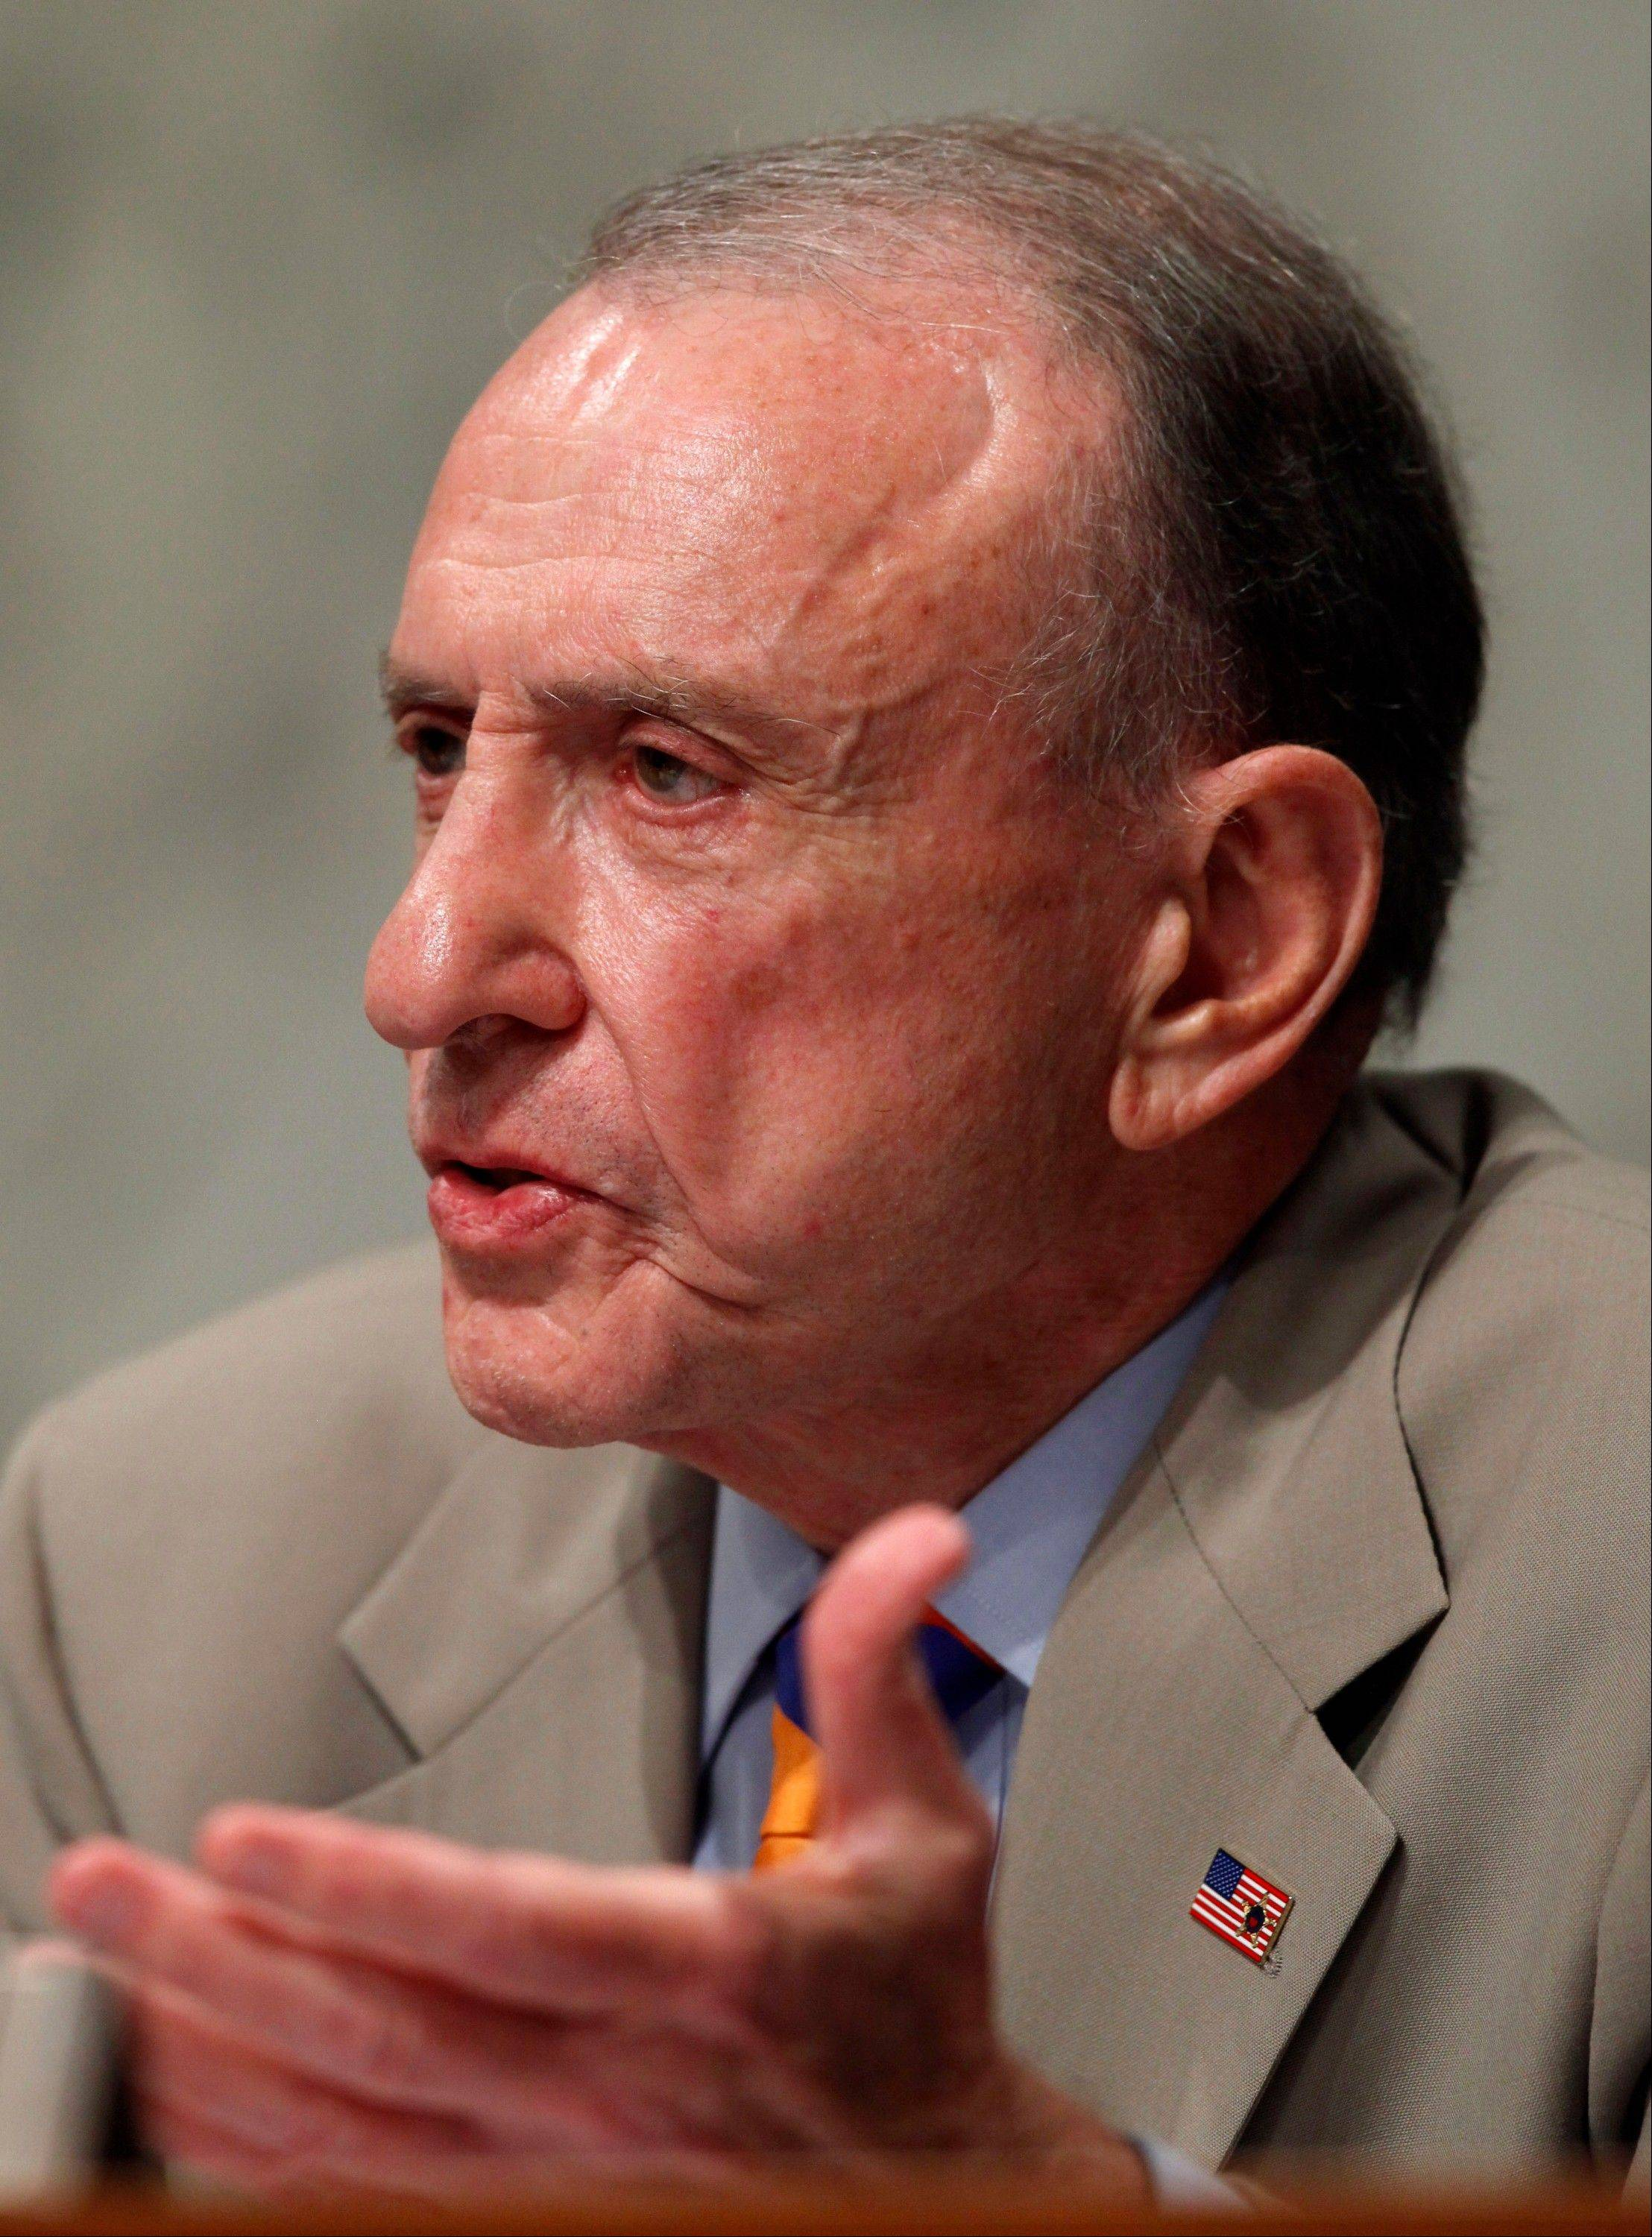 Former Sen. Arlen Specter confirmed Tuesday he is fighting cancer again, calling the latest diagnosis �another battle I intend to win.�